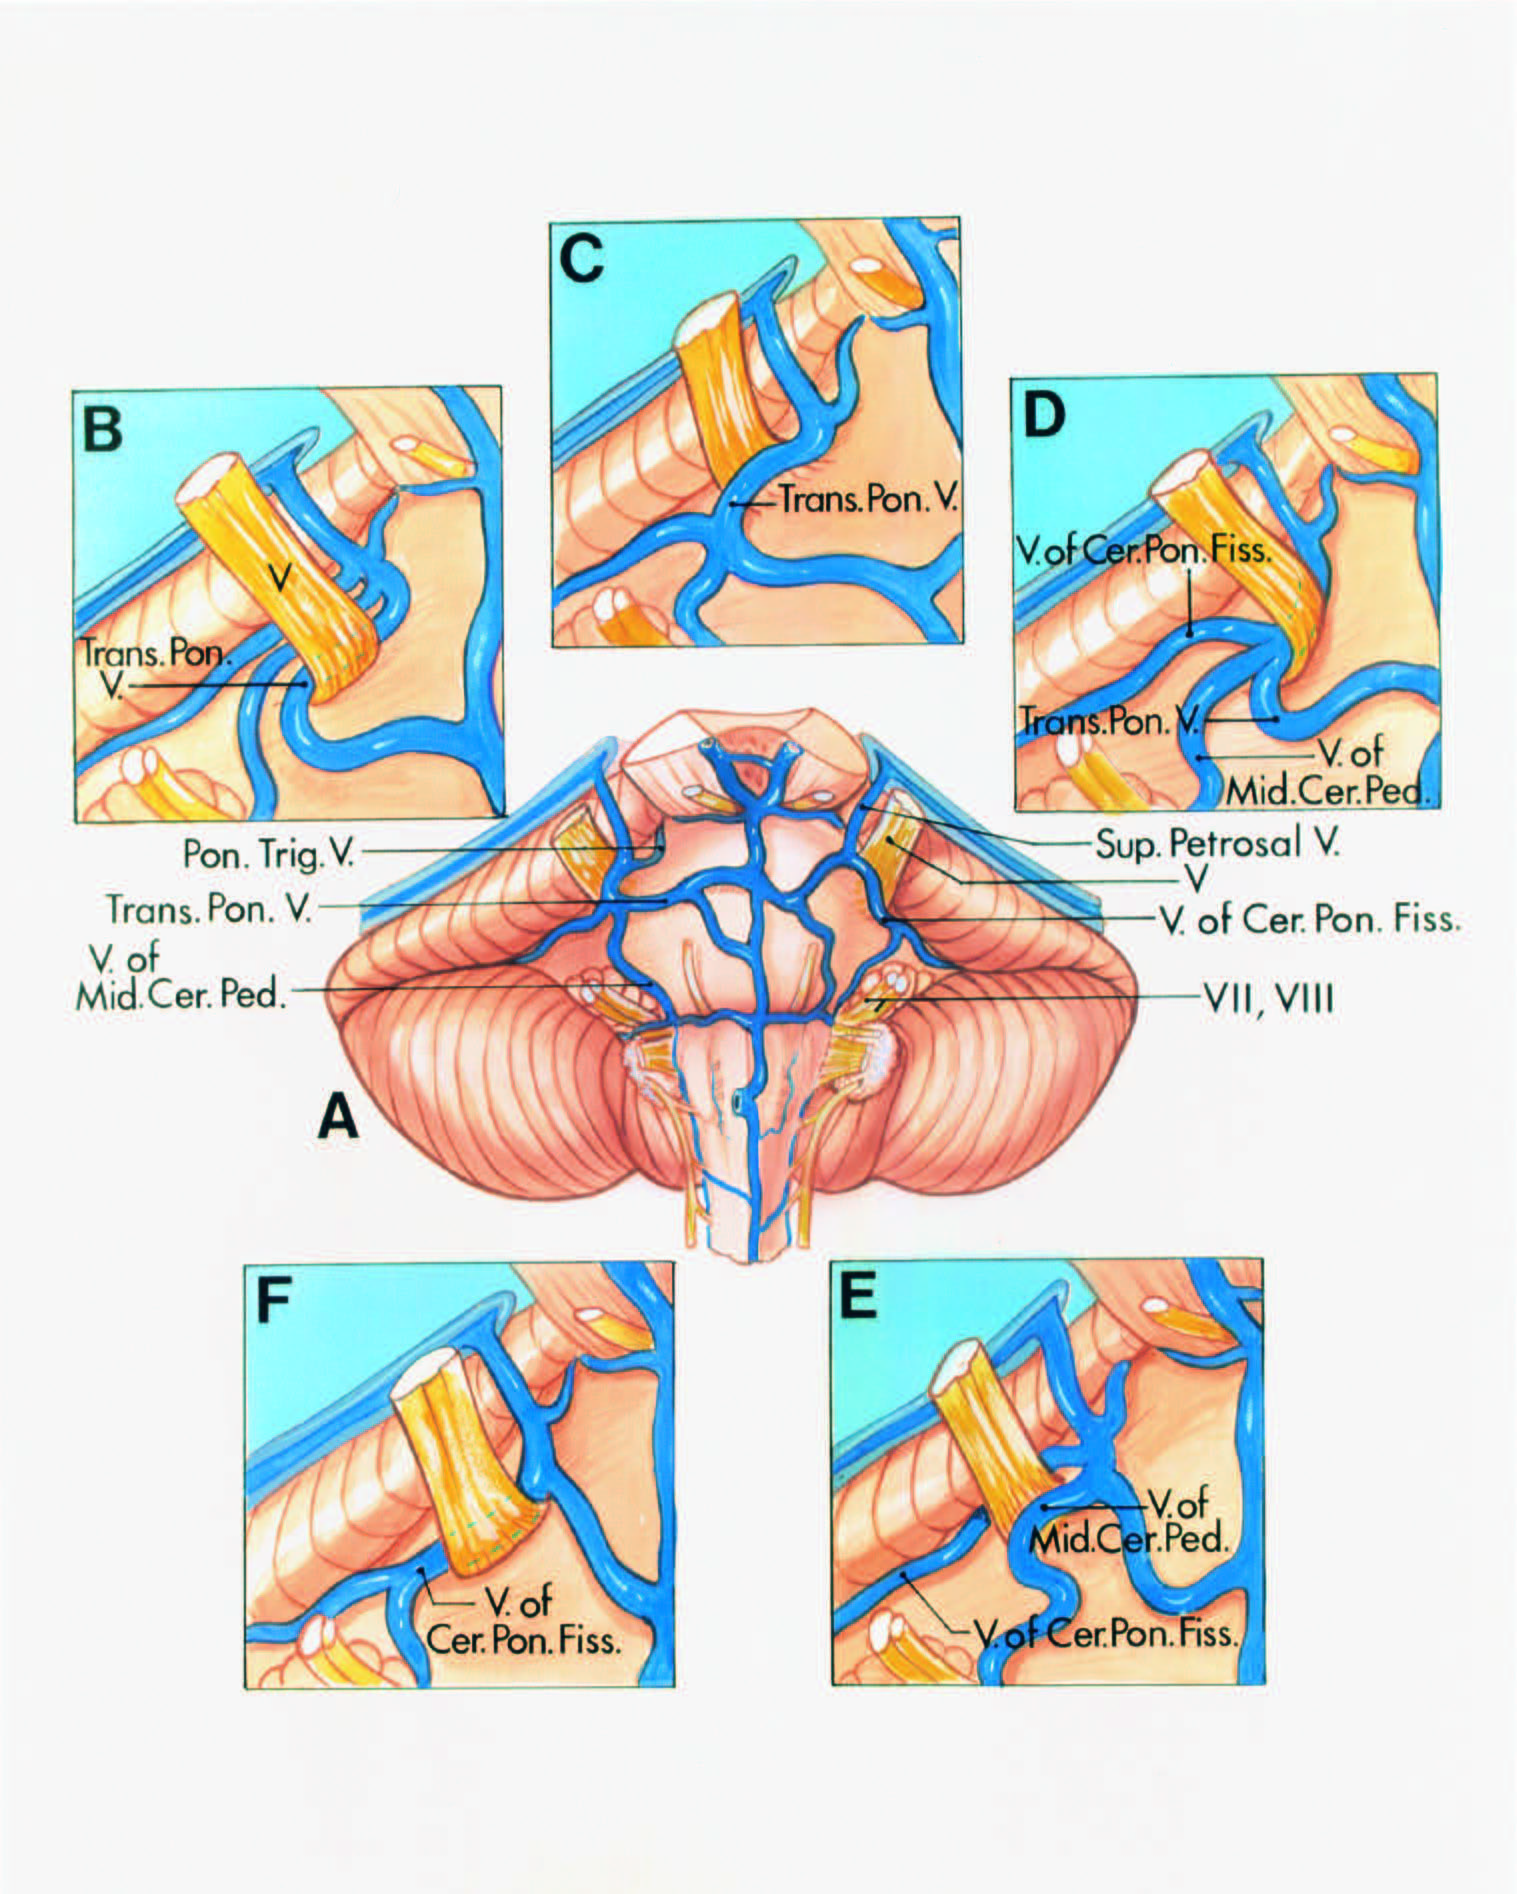 FIGURE 4.13. Sites of venous compression of the trigeminal nerve. A, central diagram. Anterior view. The veins that commonly compress the trigeminal nerve are tributaries of the superior petrosal vein. The tributaries that converge on and may compress the nerve are the transverse pontine and pontotrigeminal veins and the veins of the cerebellopontine fissure and middle cerebellar peduncle. The transverse pontine veins course transversely across the pons. The vein of the middle cerebellar peduncle arises in the region of the facial and vestibulocochlear nerves and ascends on the pons. The vein of the cerebellopontine fissure arises along the cleft between the pons and the cerebellum and ascends behind the trigeminal nerve. The pontotrigeminal vein arises on the upper pons and passes above the trigeminal nerve. B, a transverse pontine vein compresses the lateral side of the nerve and joins the veins of the middle cerebellar peduncle and cerebellopontine fissure to empty into a superior petrosal vein. C, the medial side of the nerve is compressed by a tortuous transverse pontine vein. D, the lateral side of the nerve is compressed by the junction of the transverse pontine vein withthe veins of the middle cerebellarpeduncle and thecerebellopontine fissure. E, thenerve is compressed on themedial side by the vein of the middle cerebellar peduncle and on the lateral side by the vein of the cerebellopontine fissure. F, the lateral side of the nerve is compressed by the vein of the cerebellopontine fissure. (From, Rhoton AL Jr: Microsurgical anatomy of decompression operations on the trigeminal nerve, in Rovit RL, Murali R, Jannetta PJ (eds): Trigeminal Neuralgia. Baltimore, Williams & Wilkins, 1990, pp 165–200 [34].) Cer., cerebellar; Cer. Pon., cerebellopontine; Fiss., fissure; Mid., middle; Ped., peduncle; Pon., pontine; Sup., superior; Trans., transverse; Trig., trigeminal; V., vein.